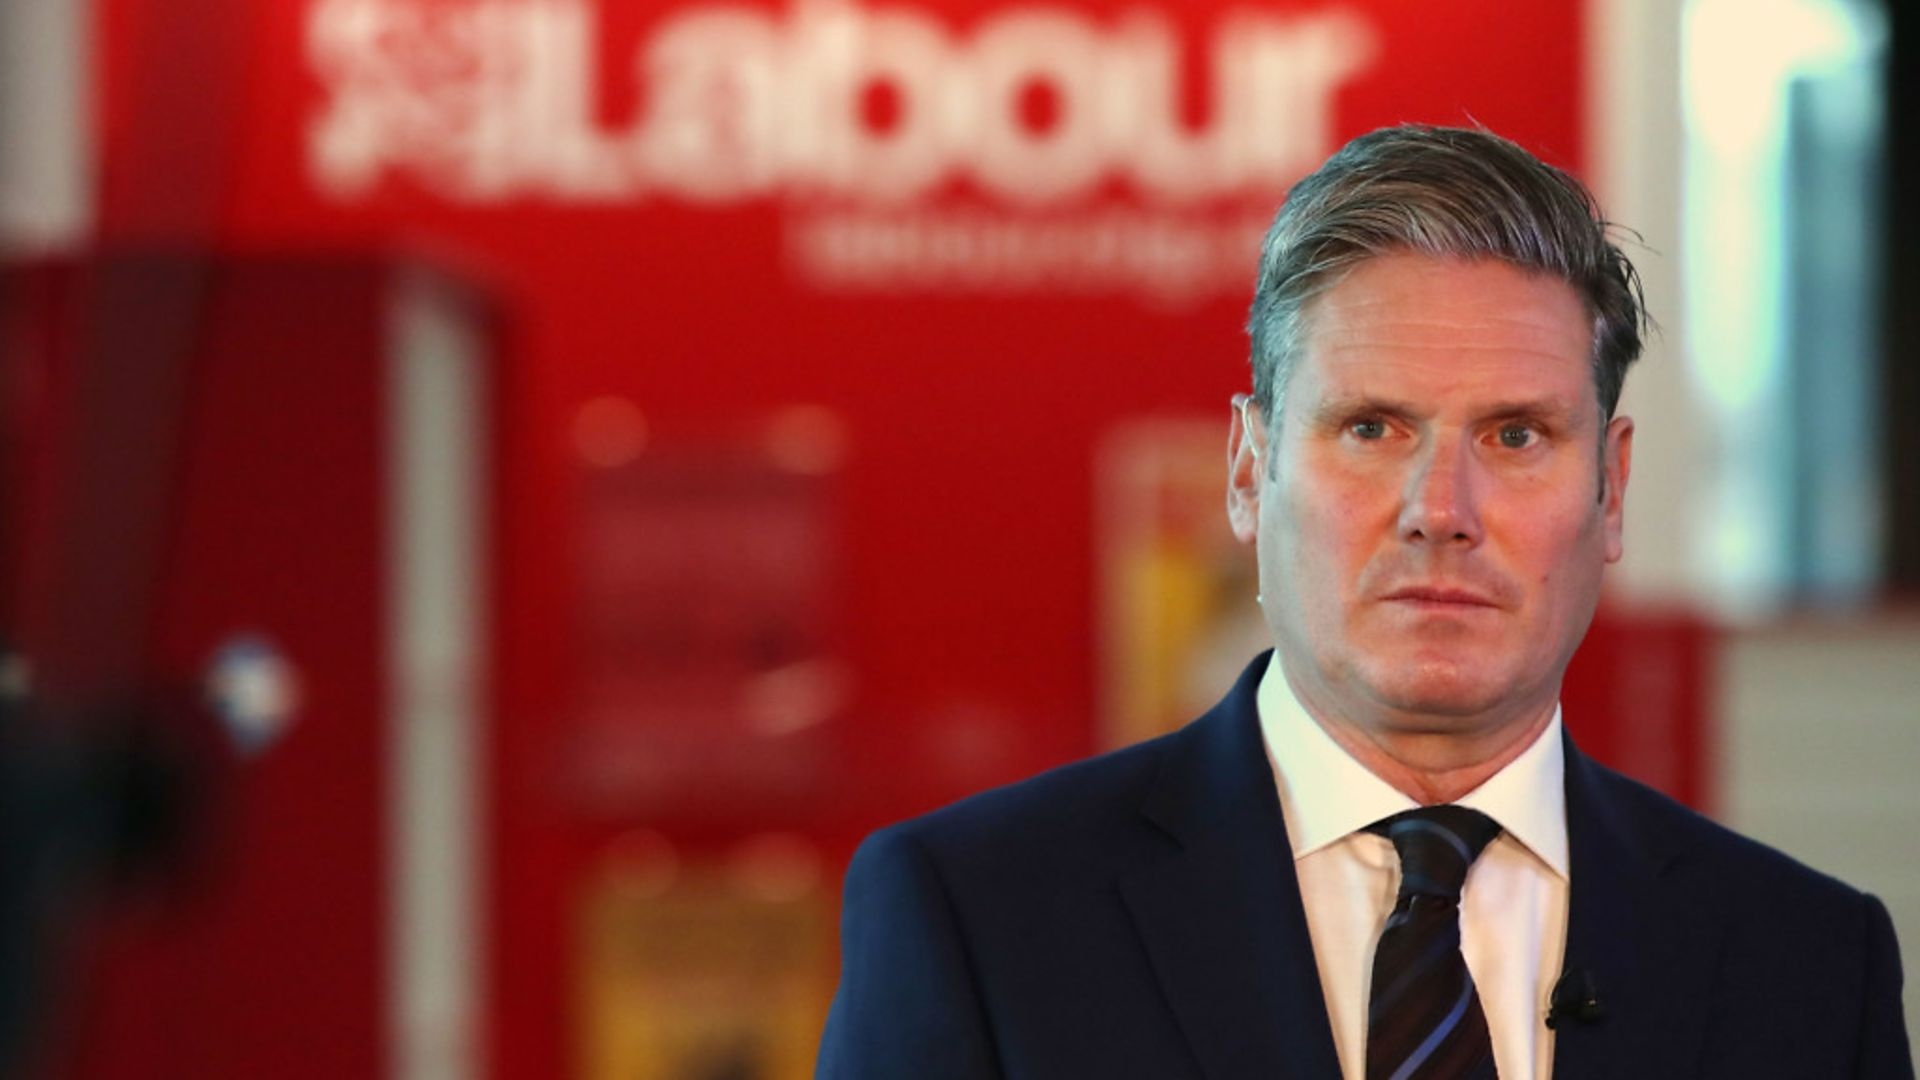 Another poll has shown Sir Keir Starmer as being viewed as a better leader than Boris Johnson. - Credit: PA